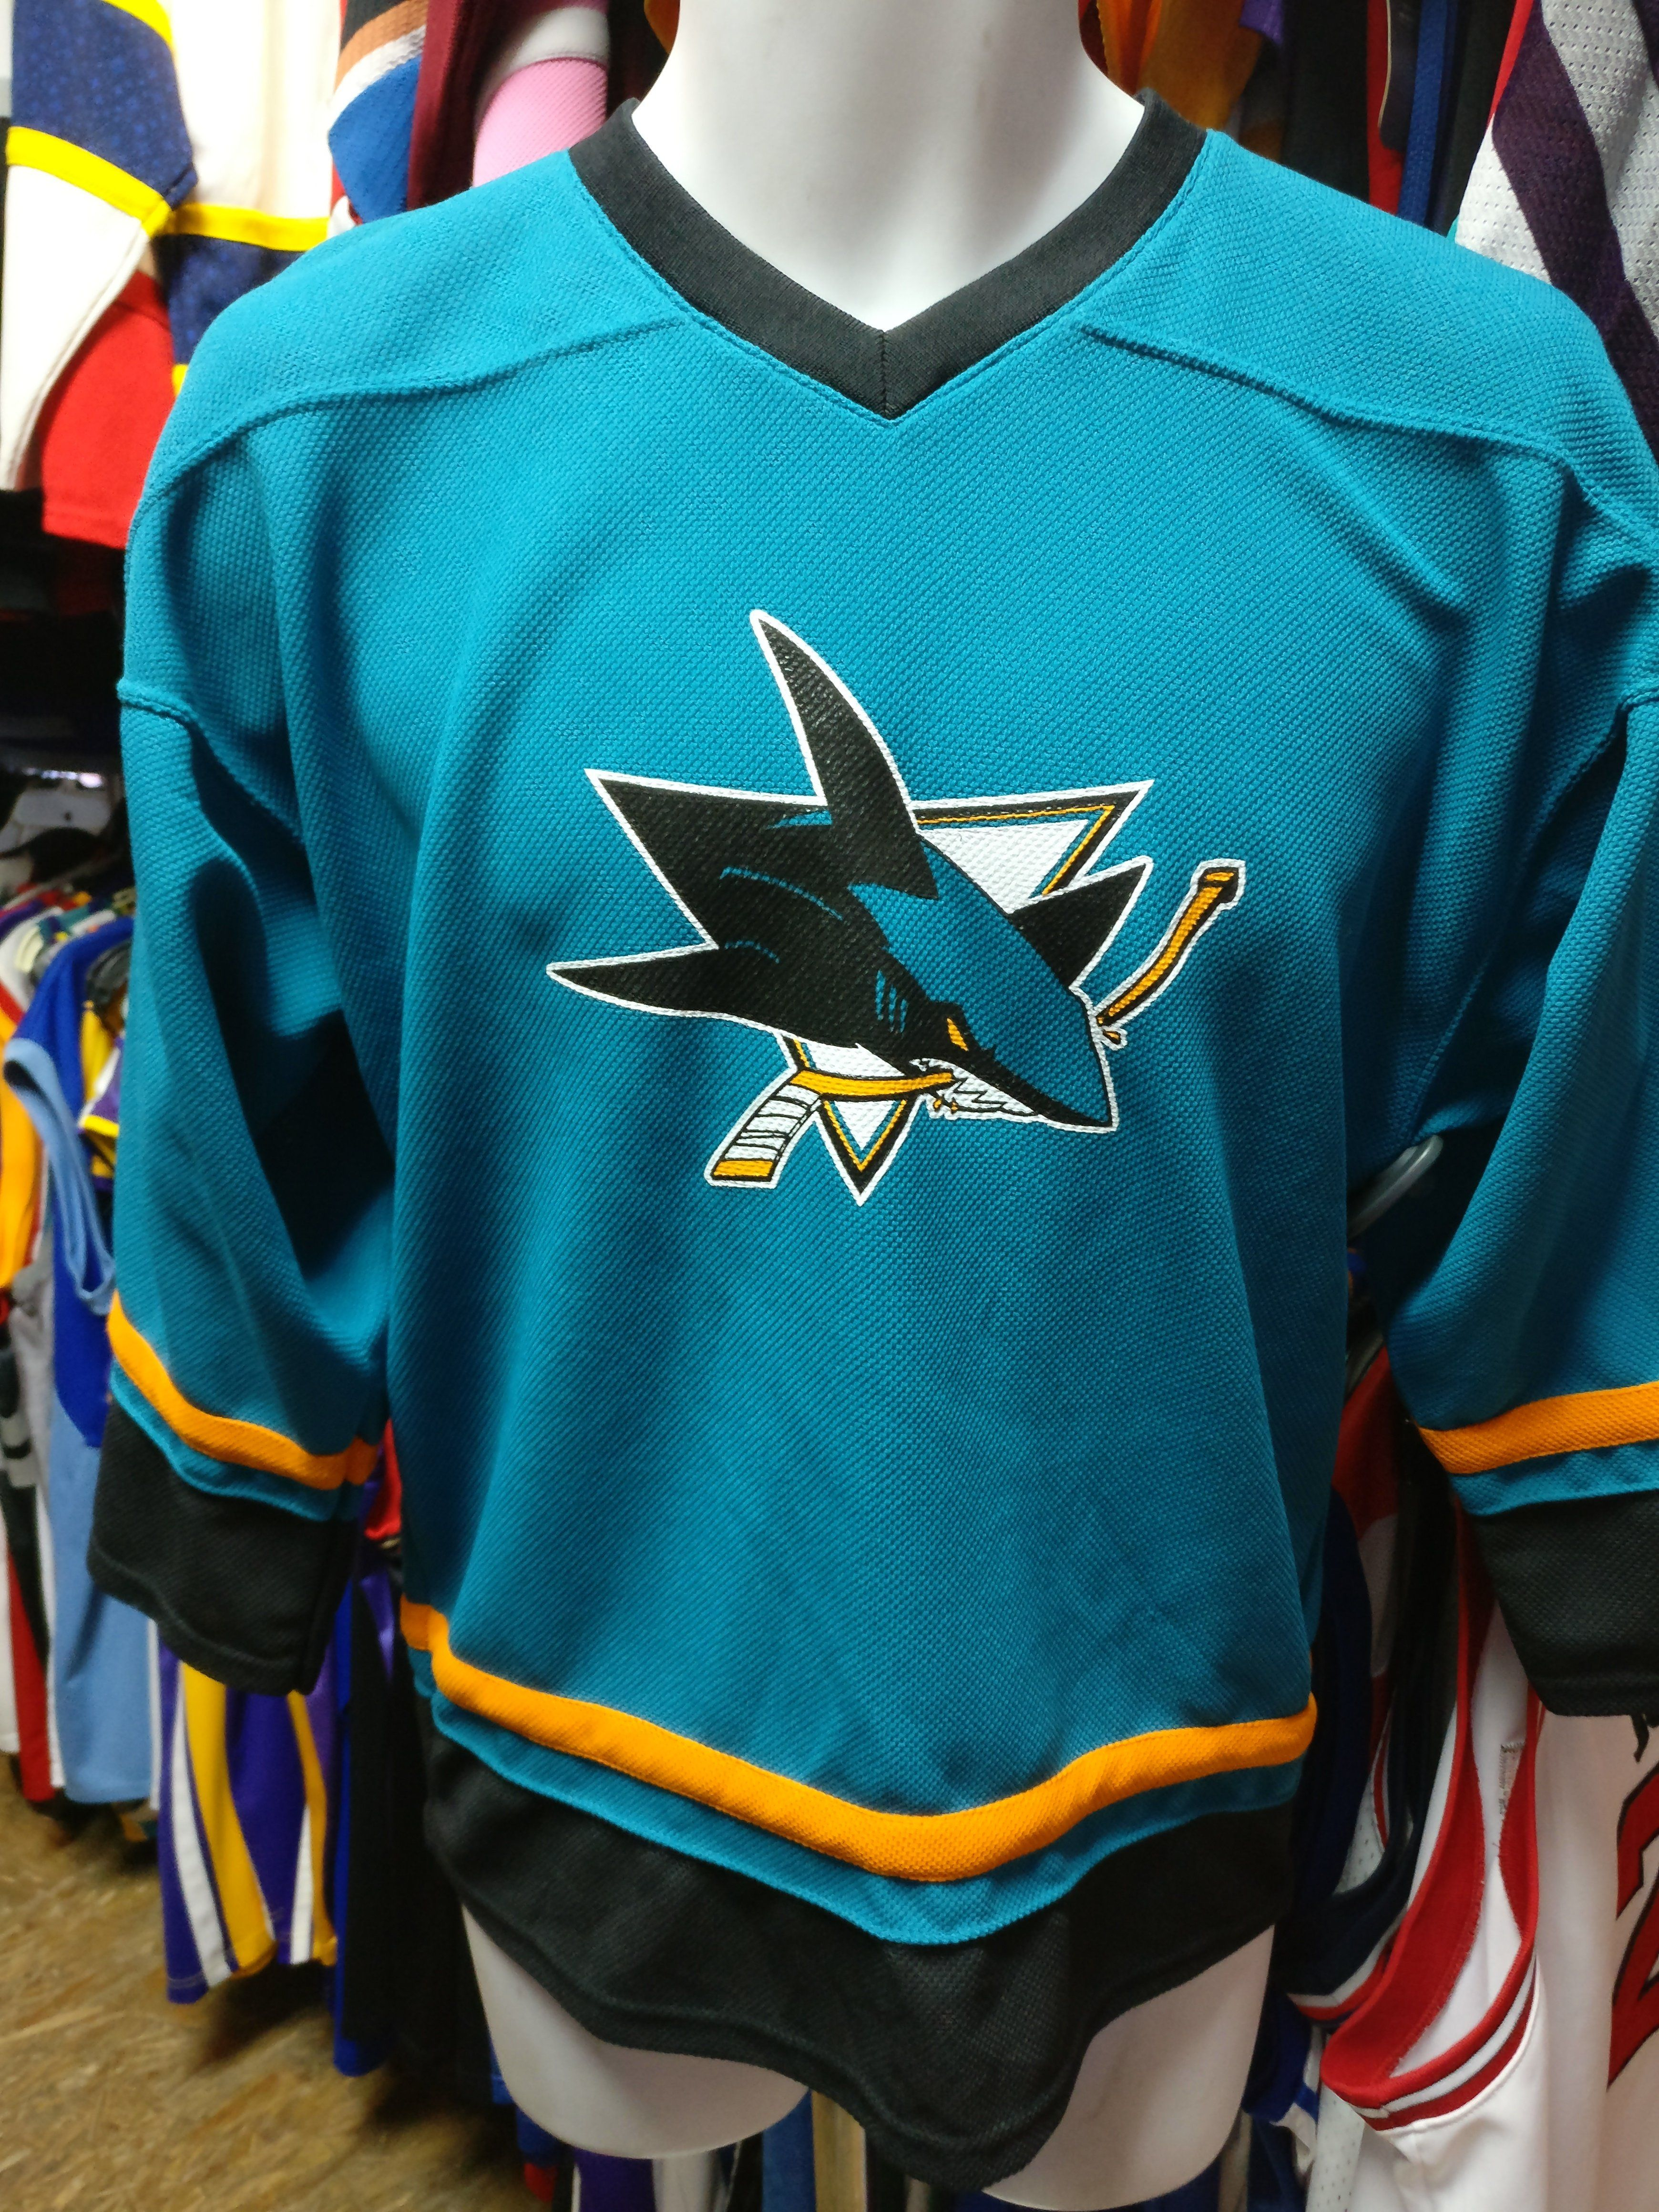 the best attitude dce59 3092a Vintage SAN JOSE SHARKS NHL Jersey YXL | Products in 2019 ...